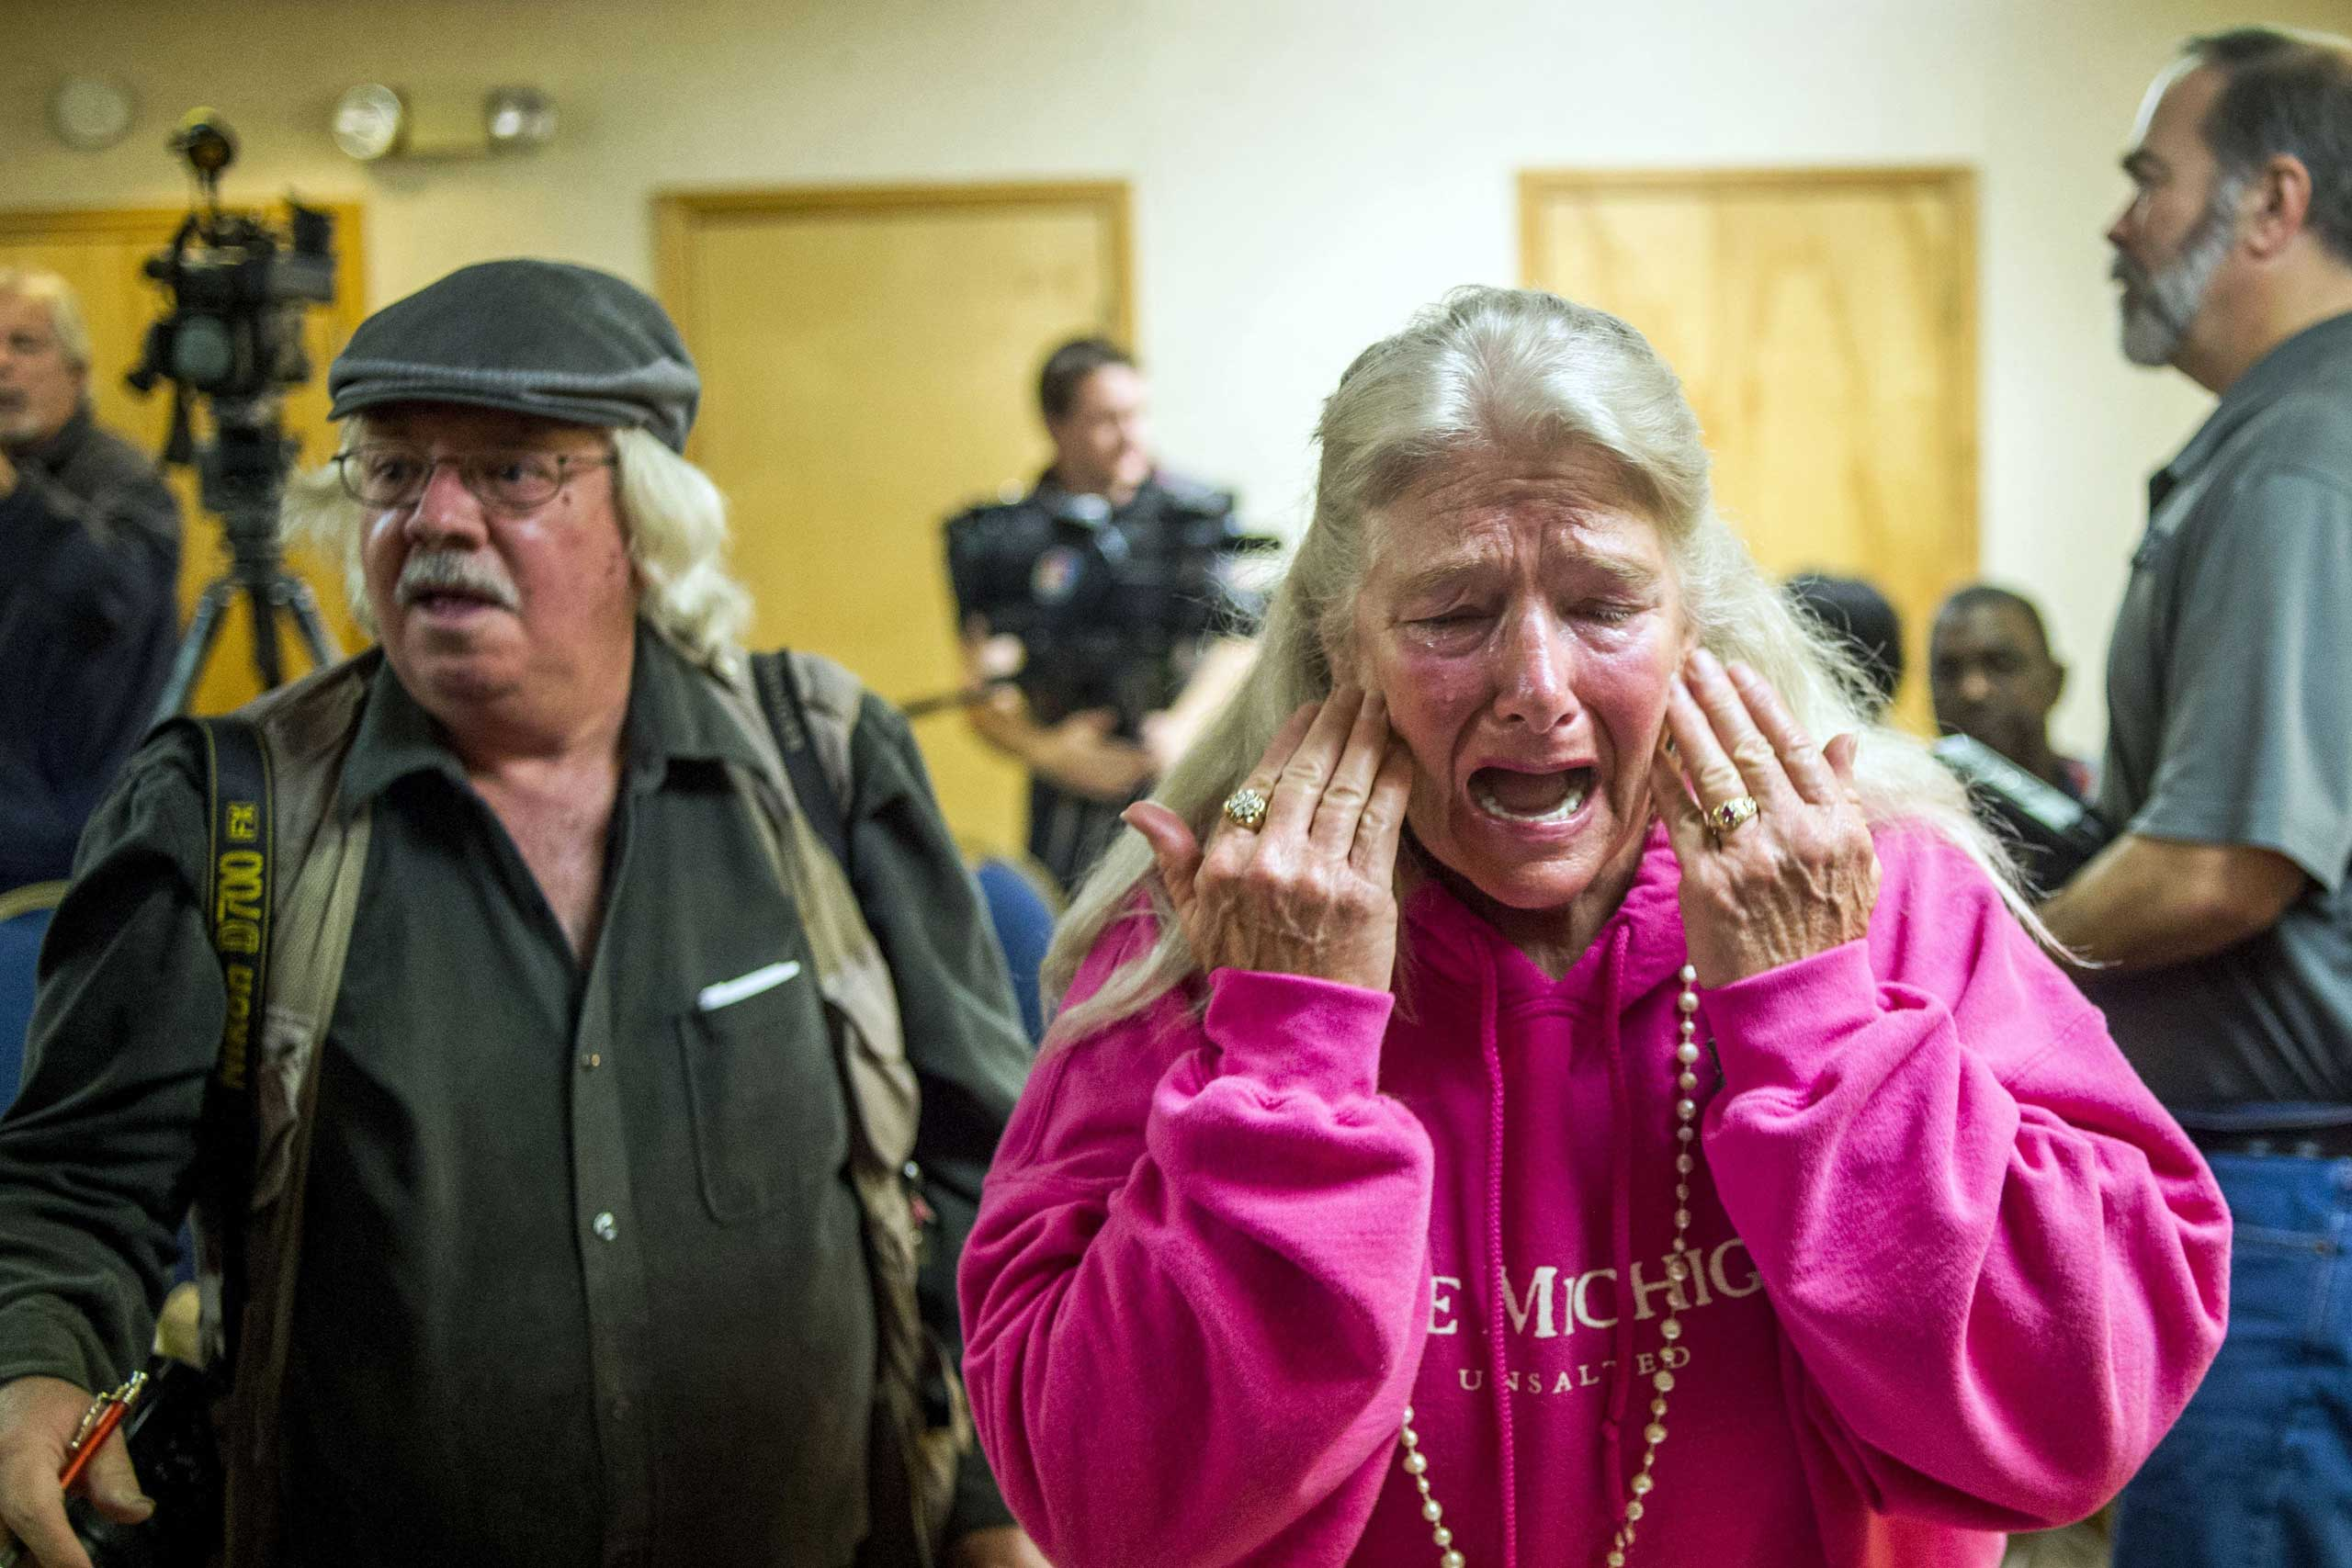 Flint resident Gladyes Williamson cries out through her tears to Melissa Mays, one of six plaintiffs, overwhelmed with frustration of the water issue and joy in the filing of a potential class action lawsuit against both city and state government officials on Nov. 16, 2015, at the Holiday Inn Express in Flint, Mich. The lawsuit claims that these government officials violated constitutional rights by providing lead-tainted water to residents, which led to alleged developing health issues, including hair loss, depression and auto-immune disorders.